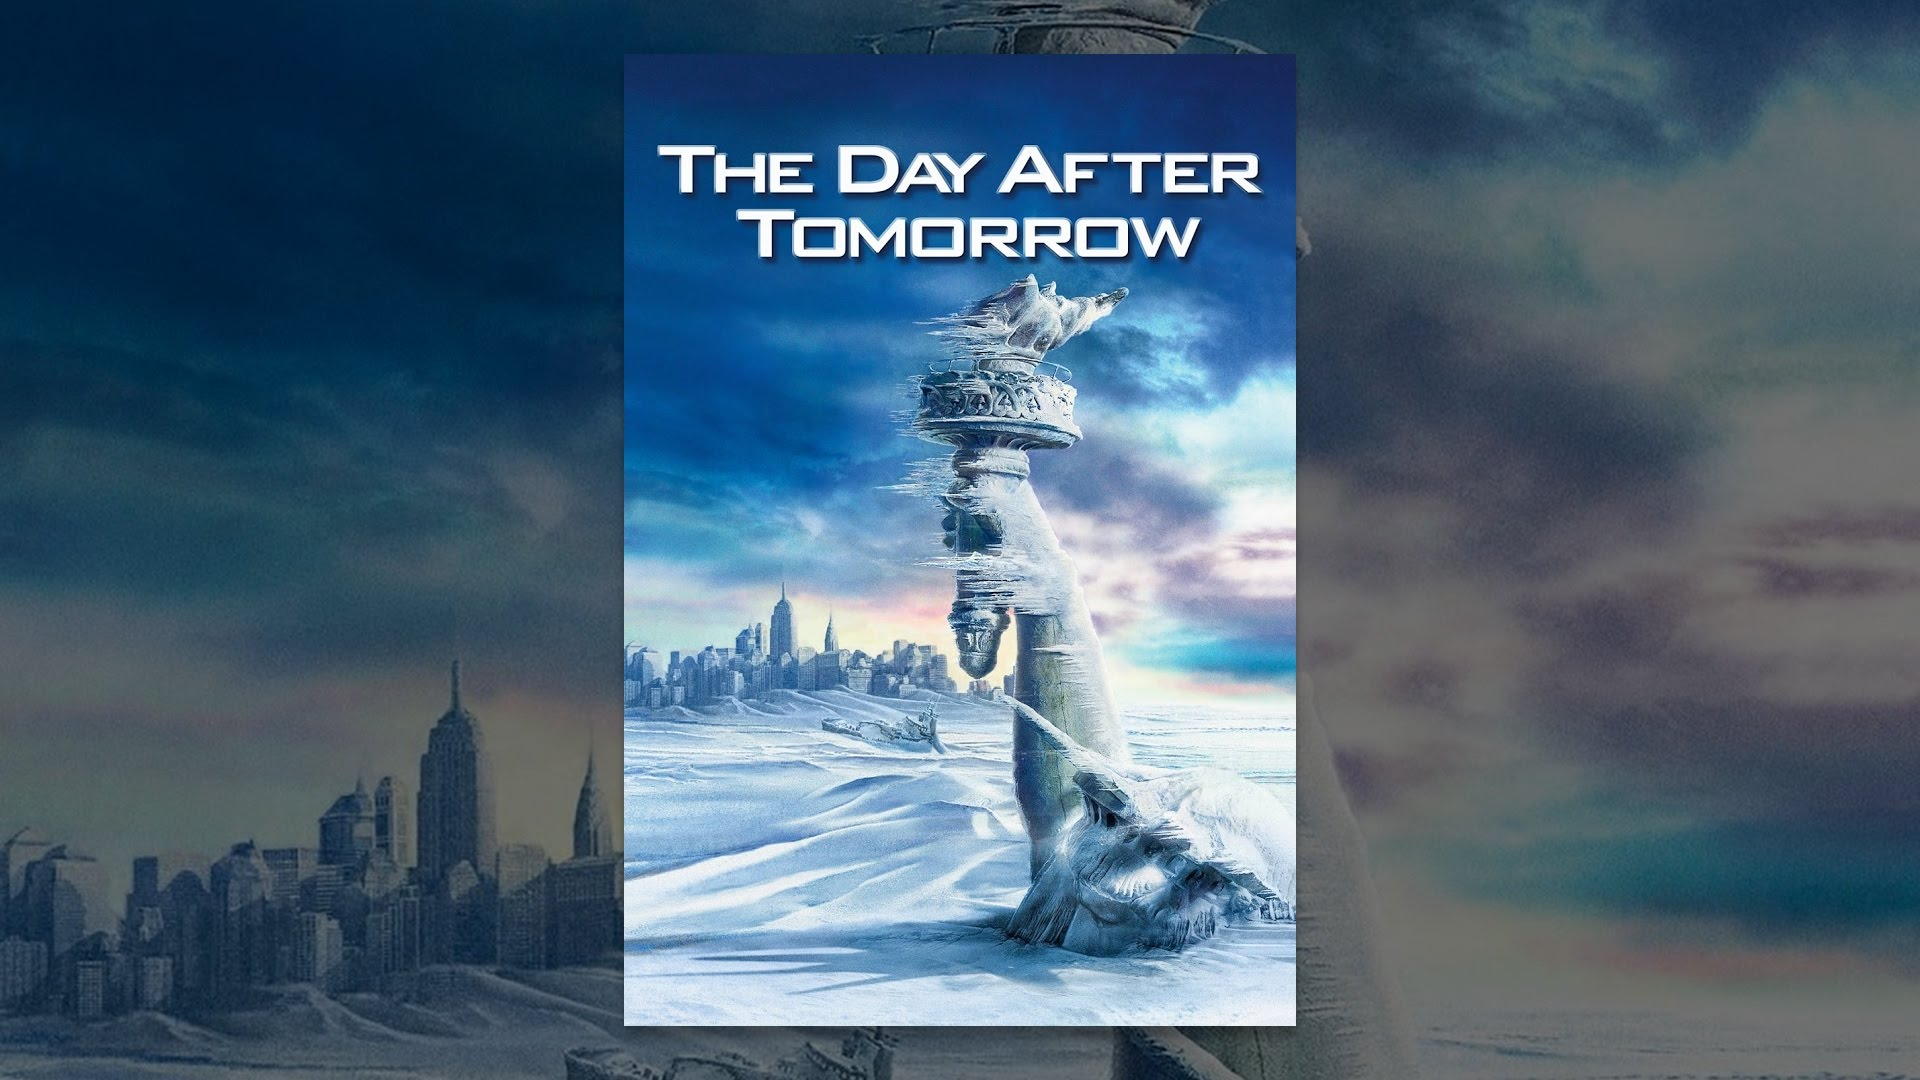 YouTube ムービー The Day After Tomorrow - YouTube ナビ